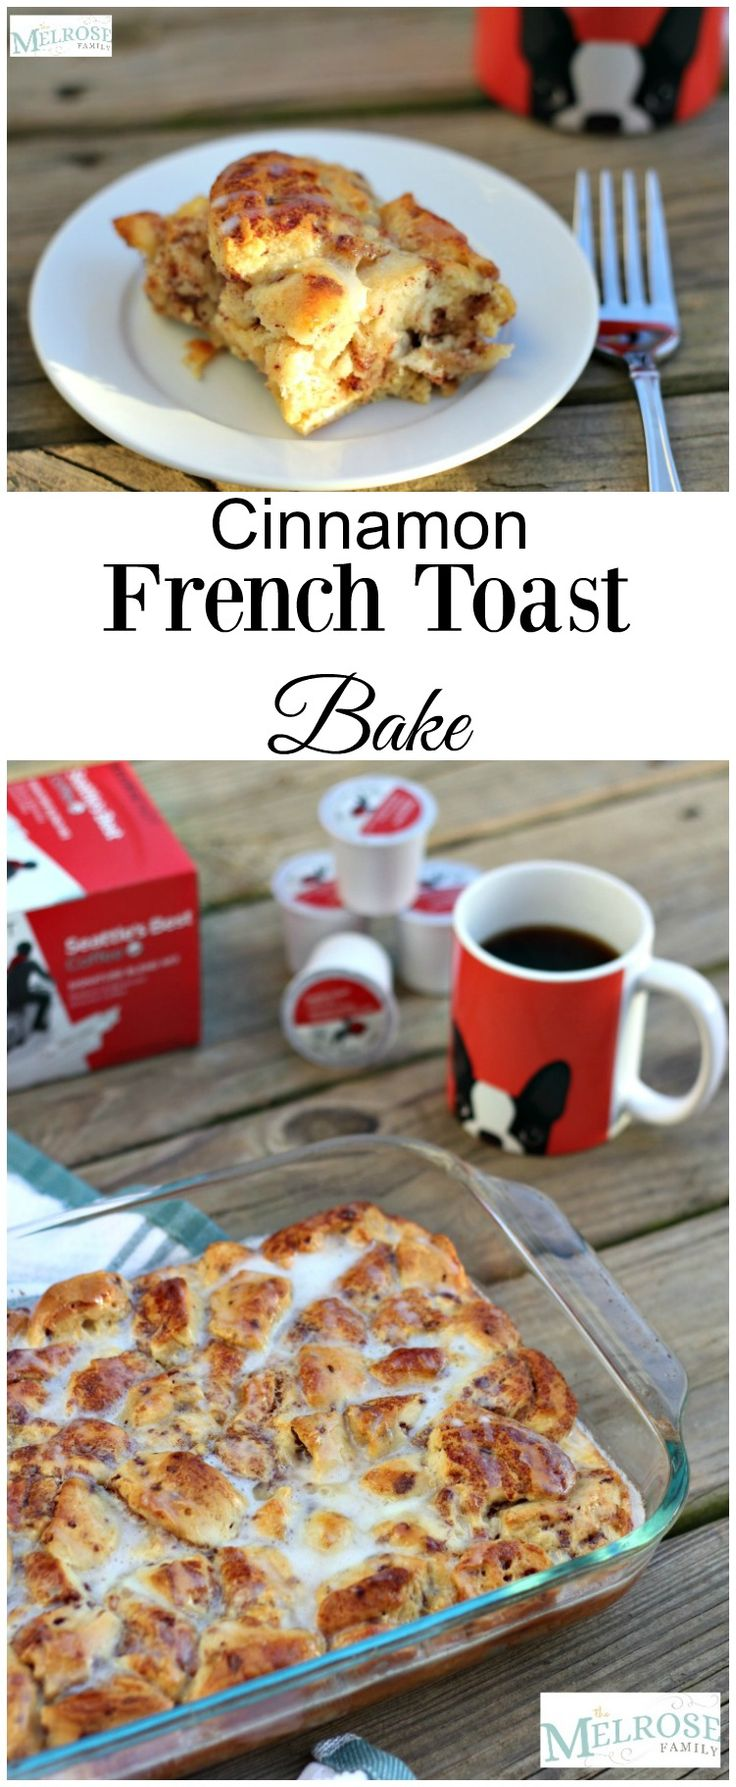 Cinnamon French Toast Bake is the perfect breakfast recipe. #ad #seattlesbestcoffee #breakfastblend